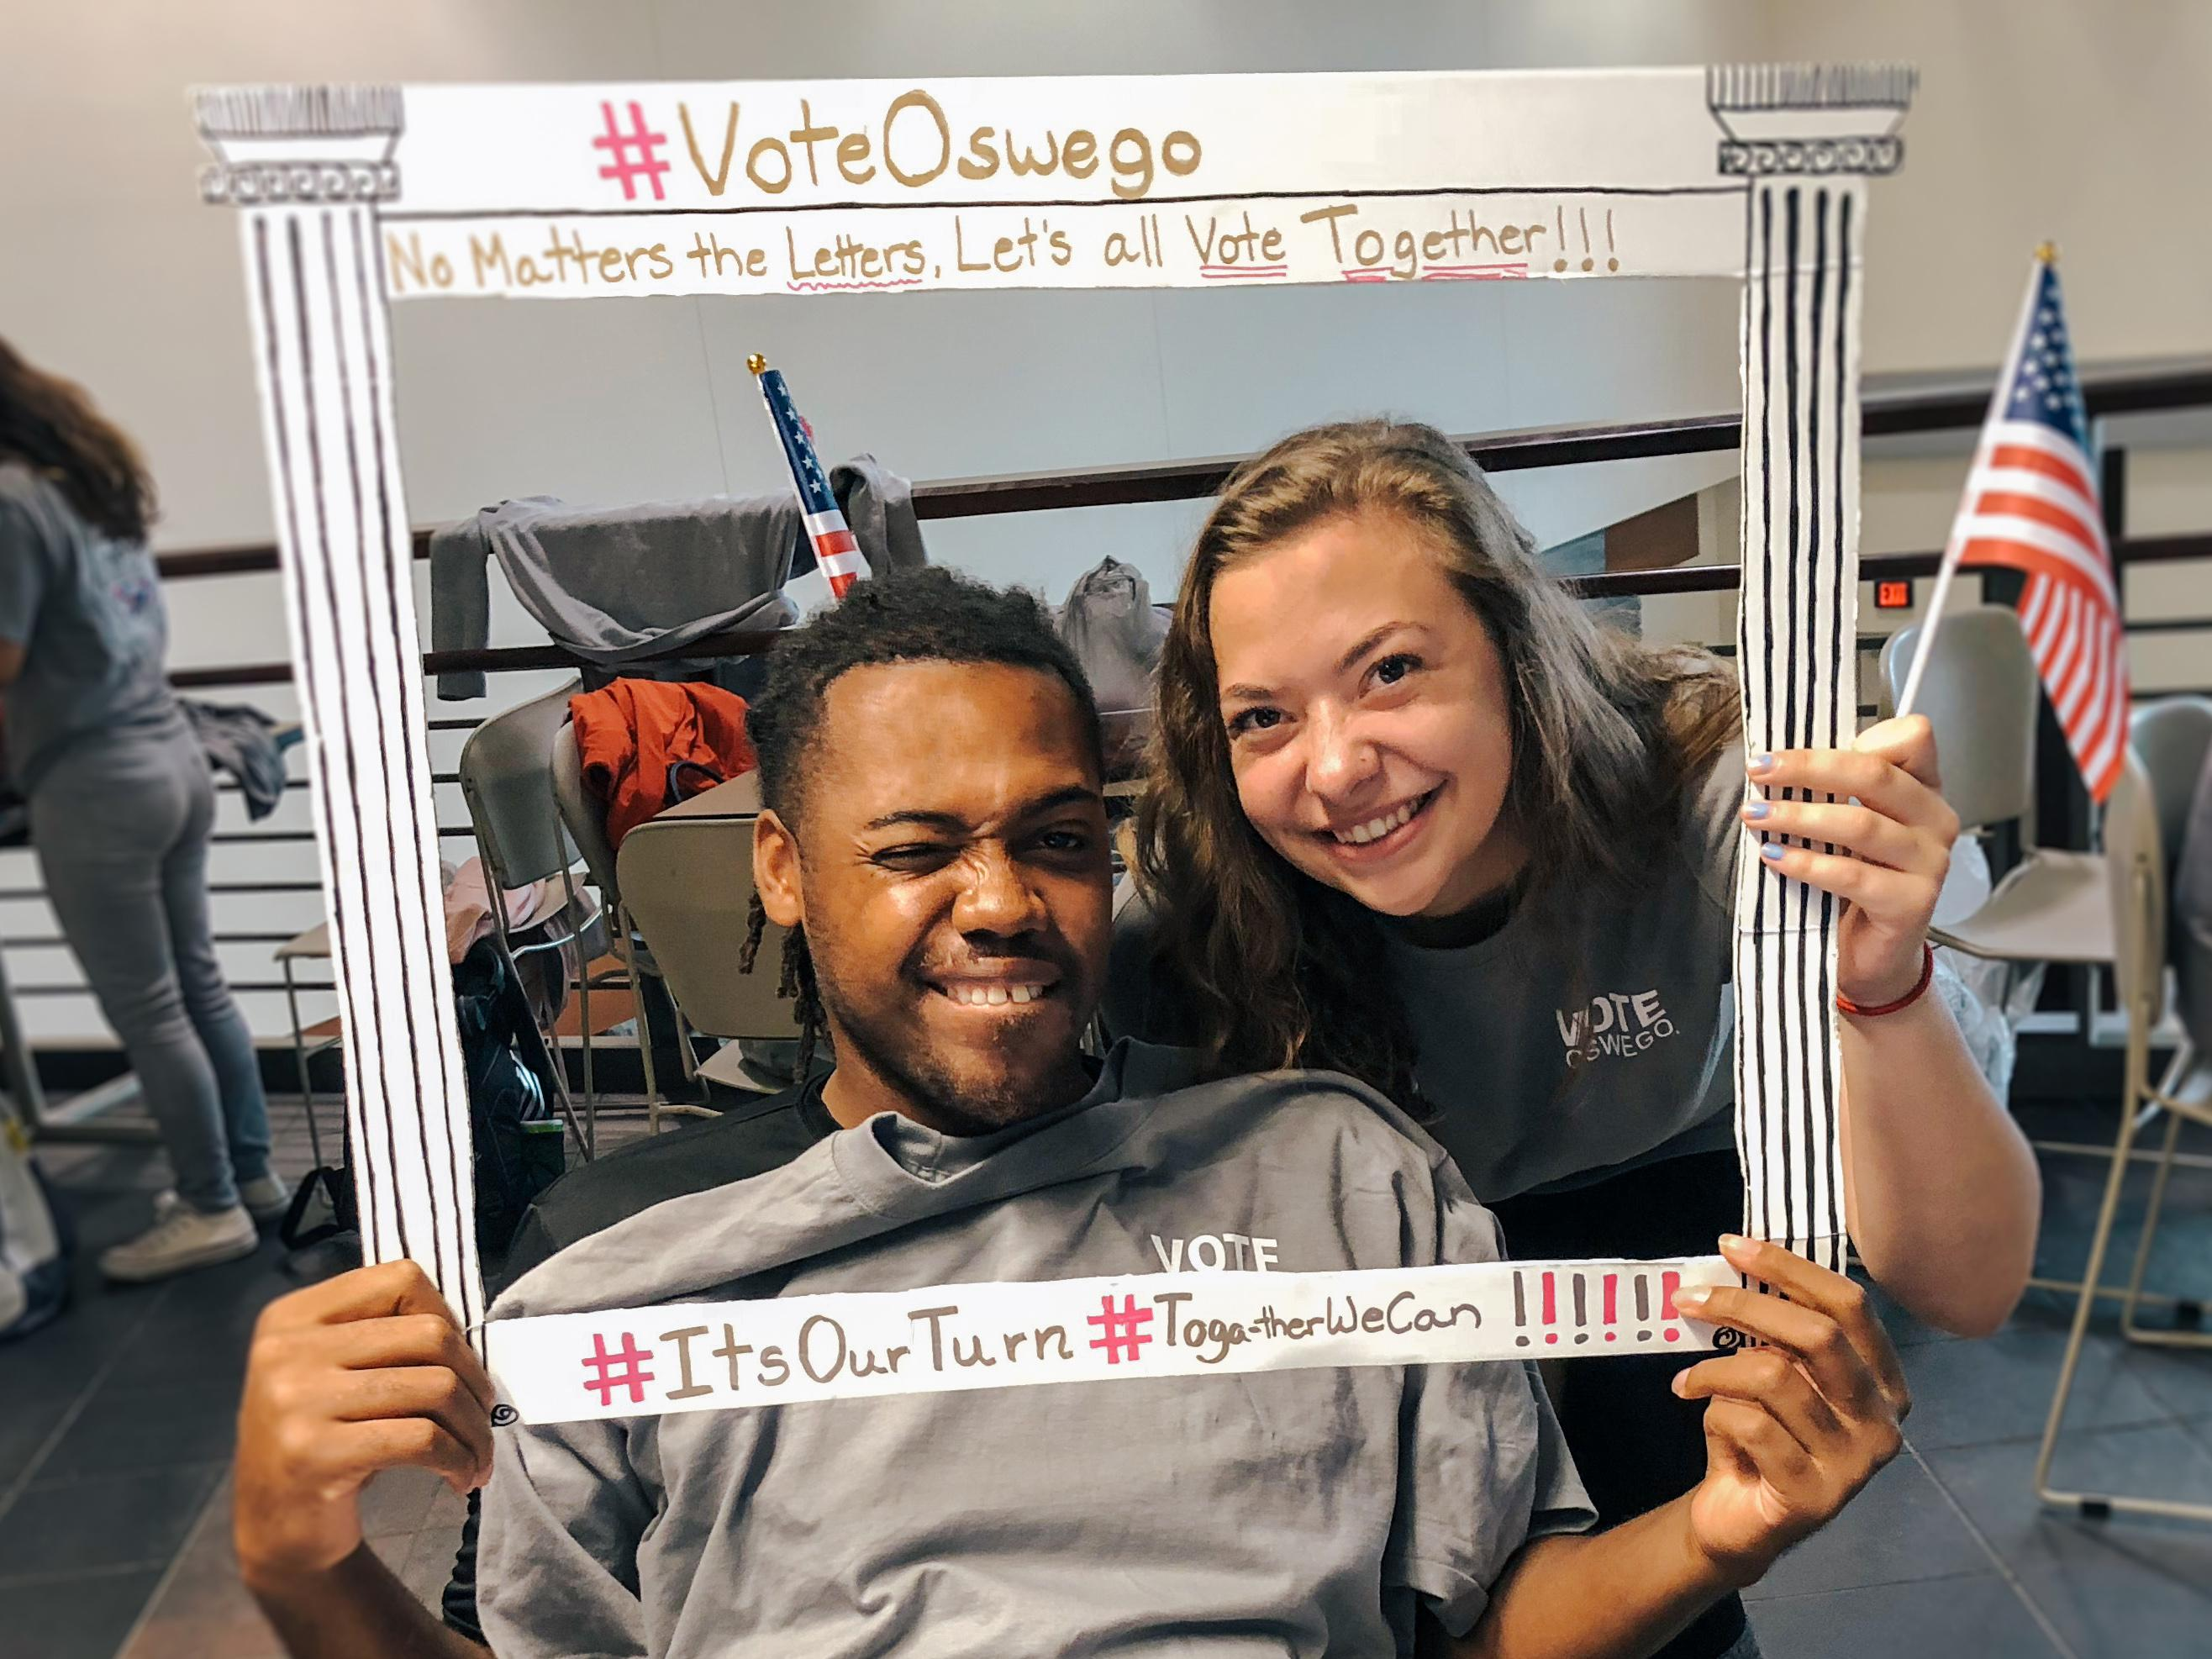 Students working together for civic engagement via Vote Oswego